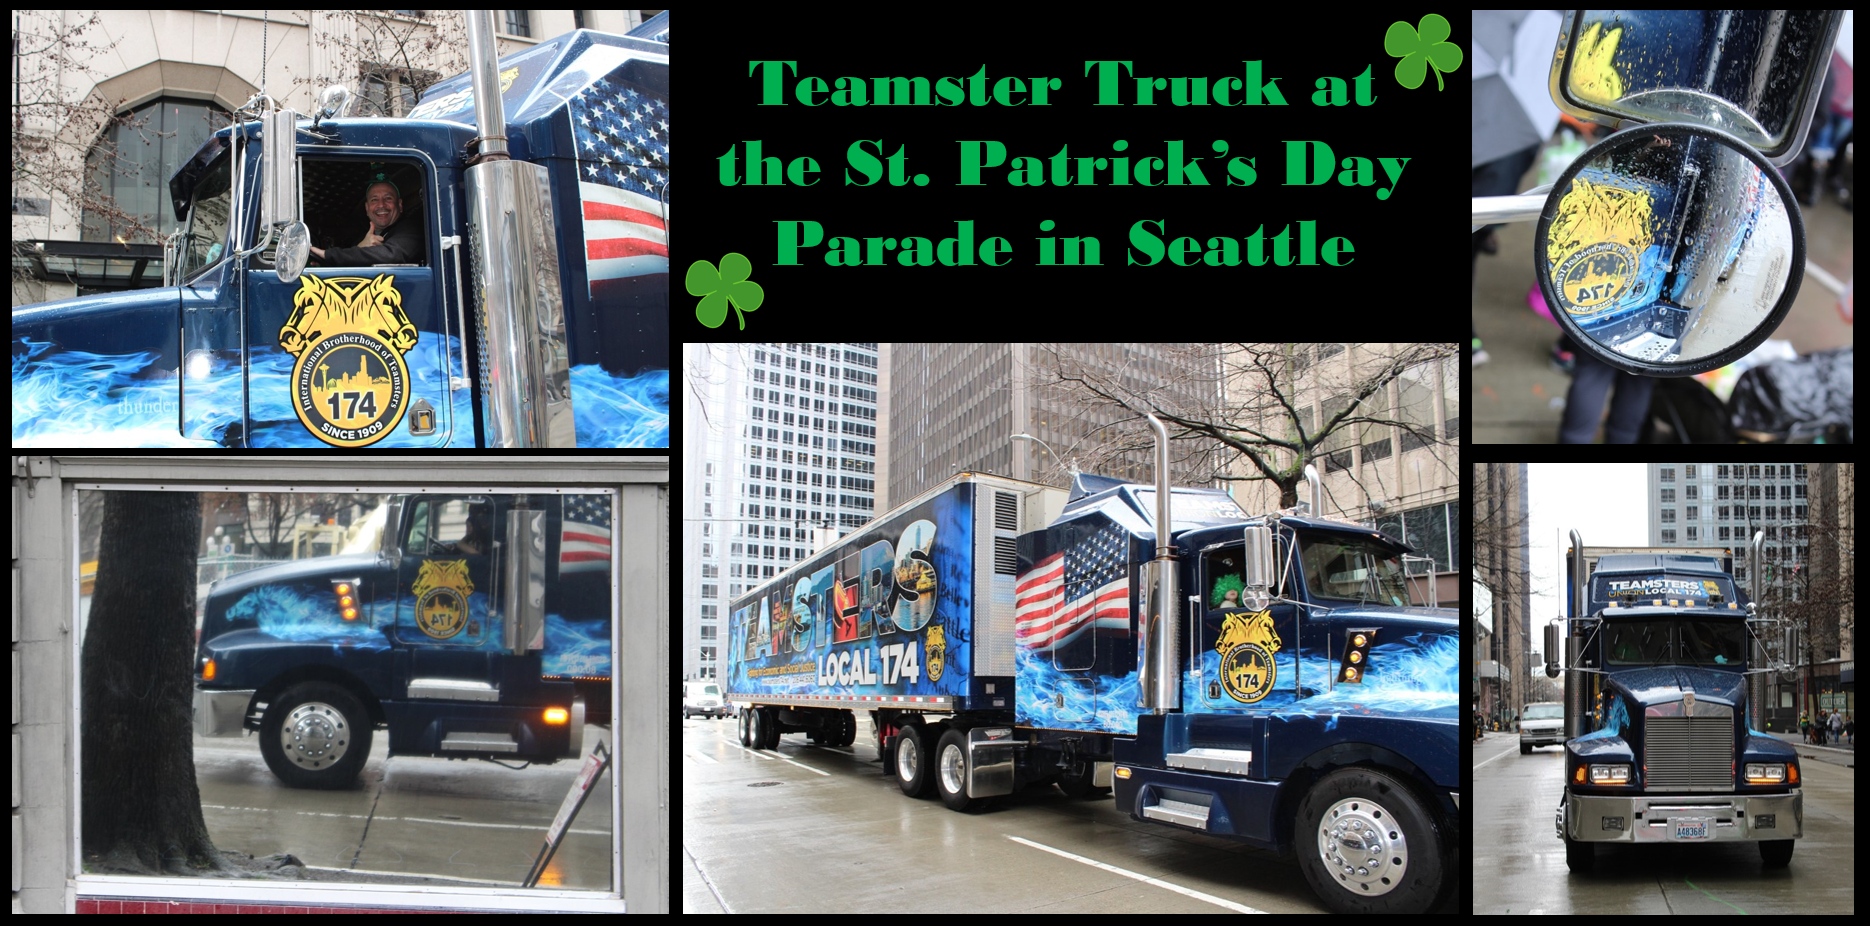 2017-3-13-St.-Patricks-parade